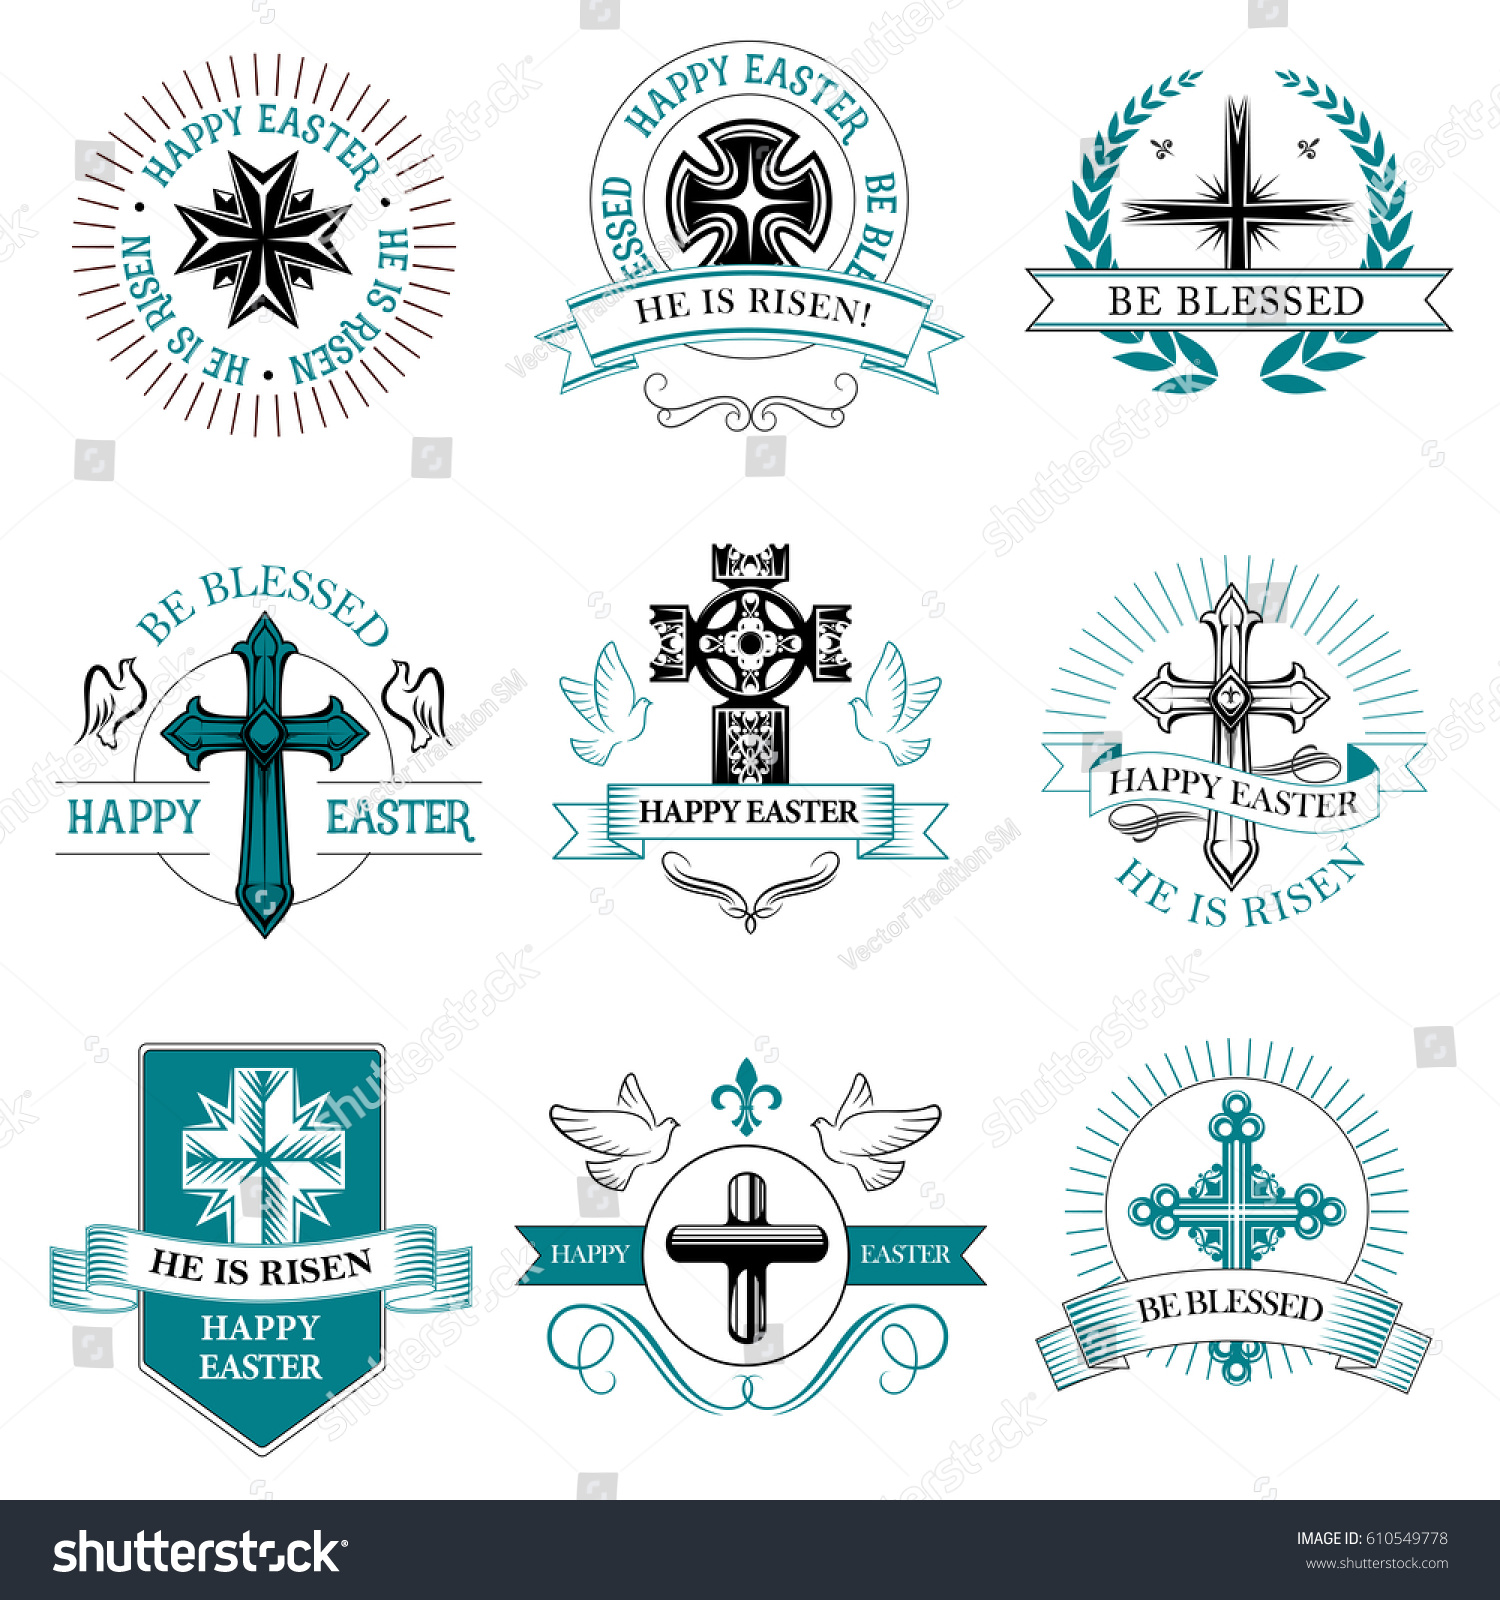 Easter paschal greeting icons crucifix cross stock vector easter paschal greeting icons of crucifix cross and text he is risen be blessed with buycottarizona Images